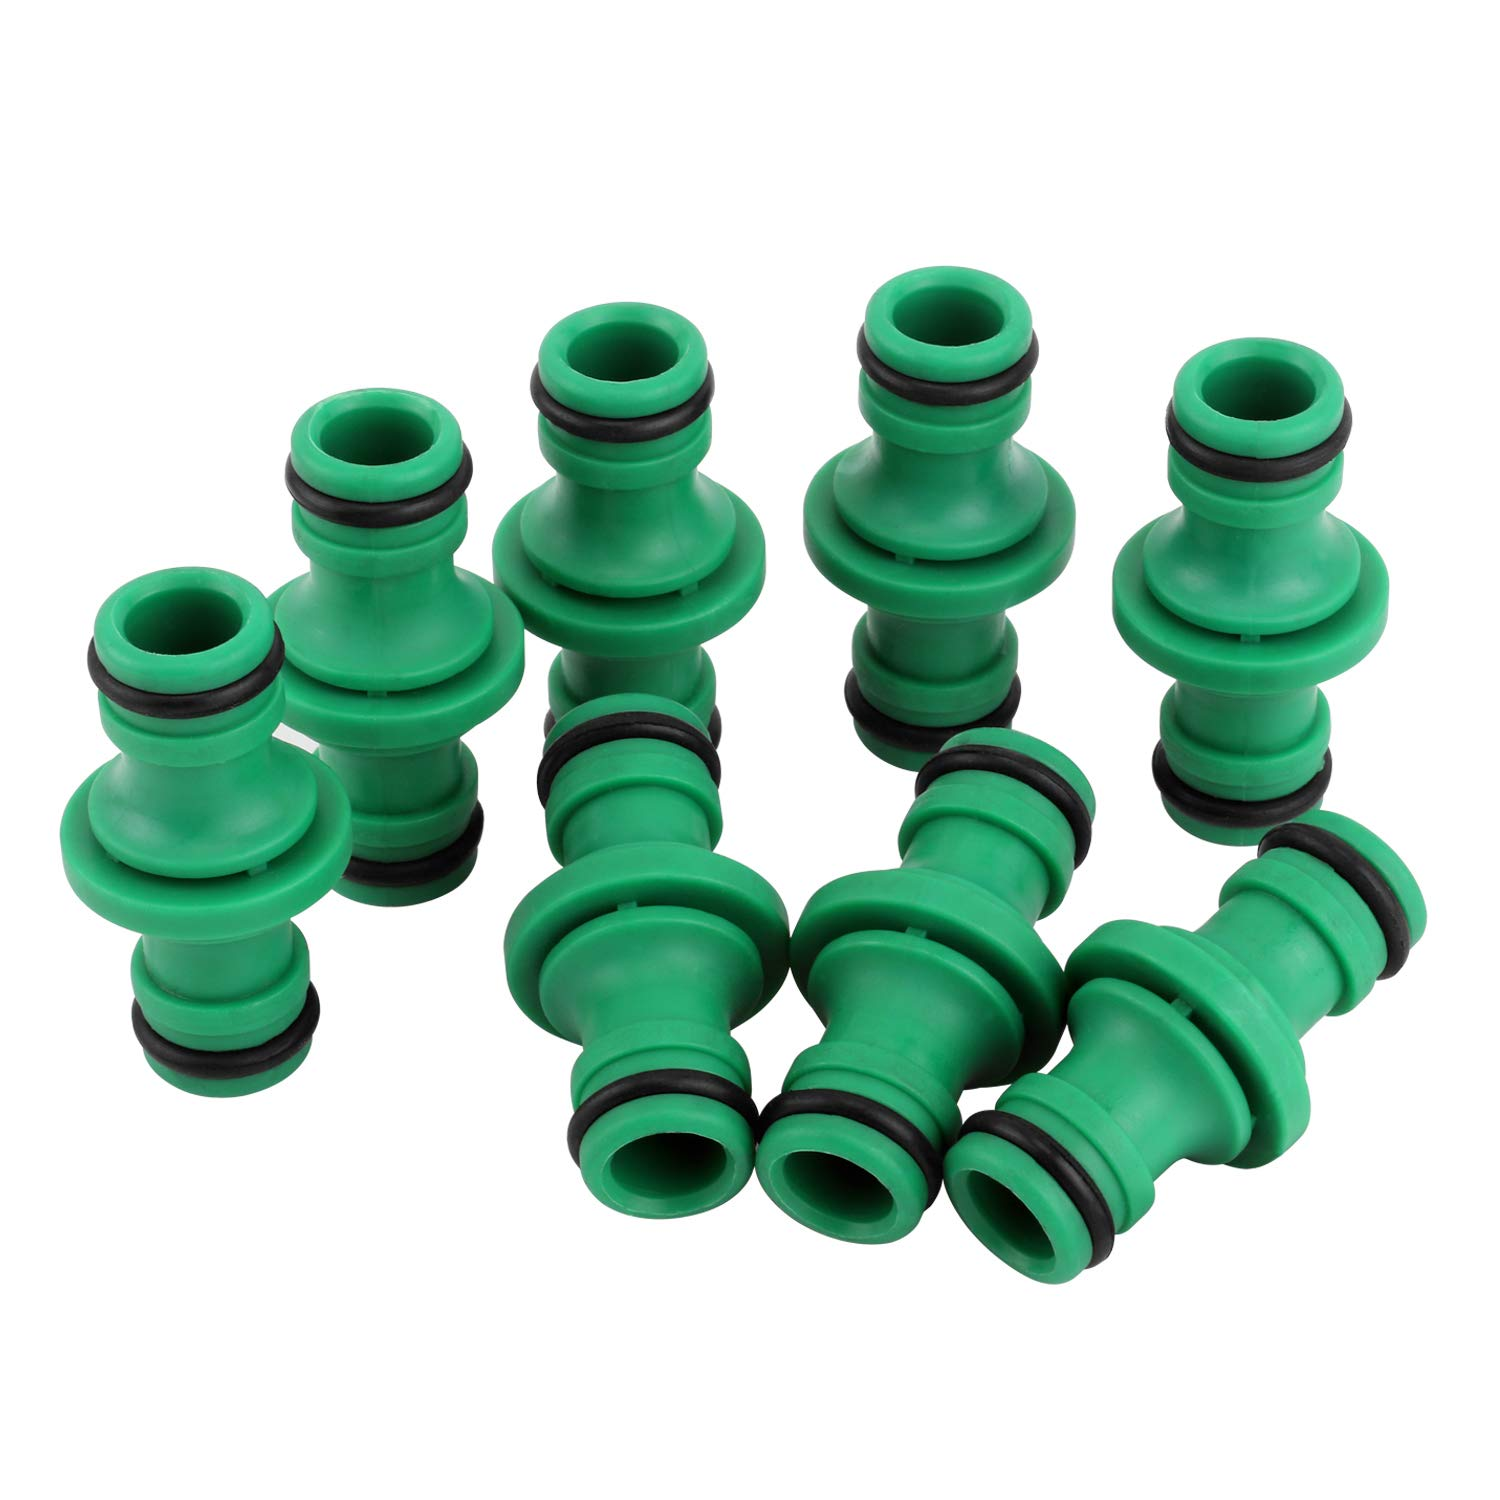 Alcoon 8 Pack Double Male Hose Connectors Extender for Join Garden Hose Pipe Tube (Green)